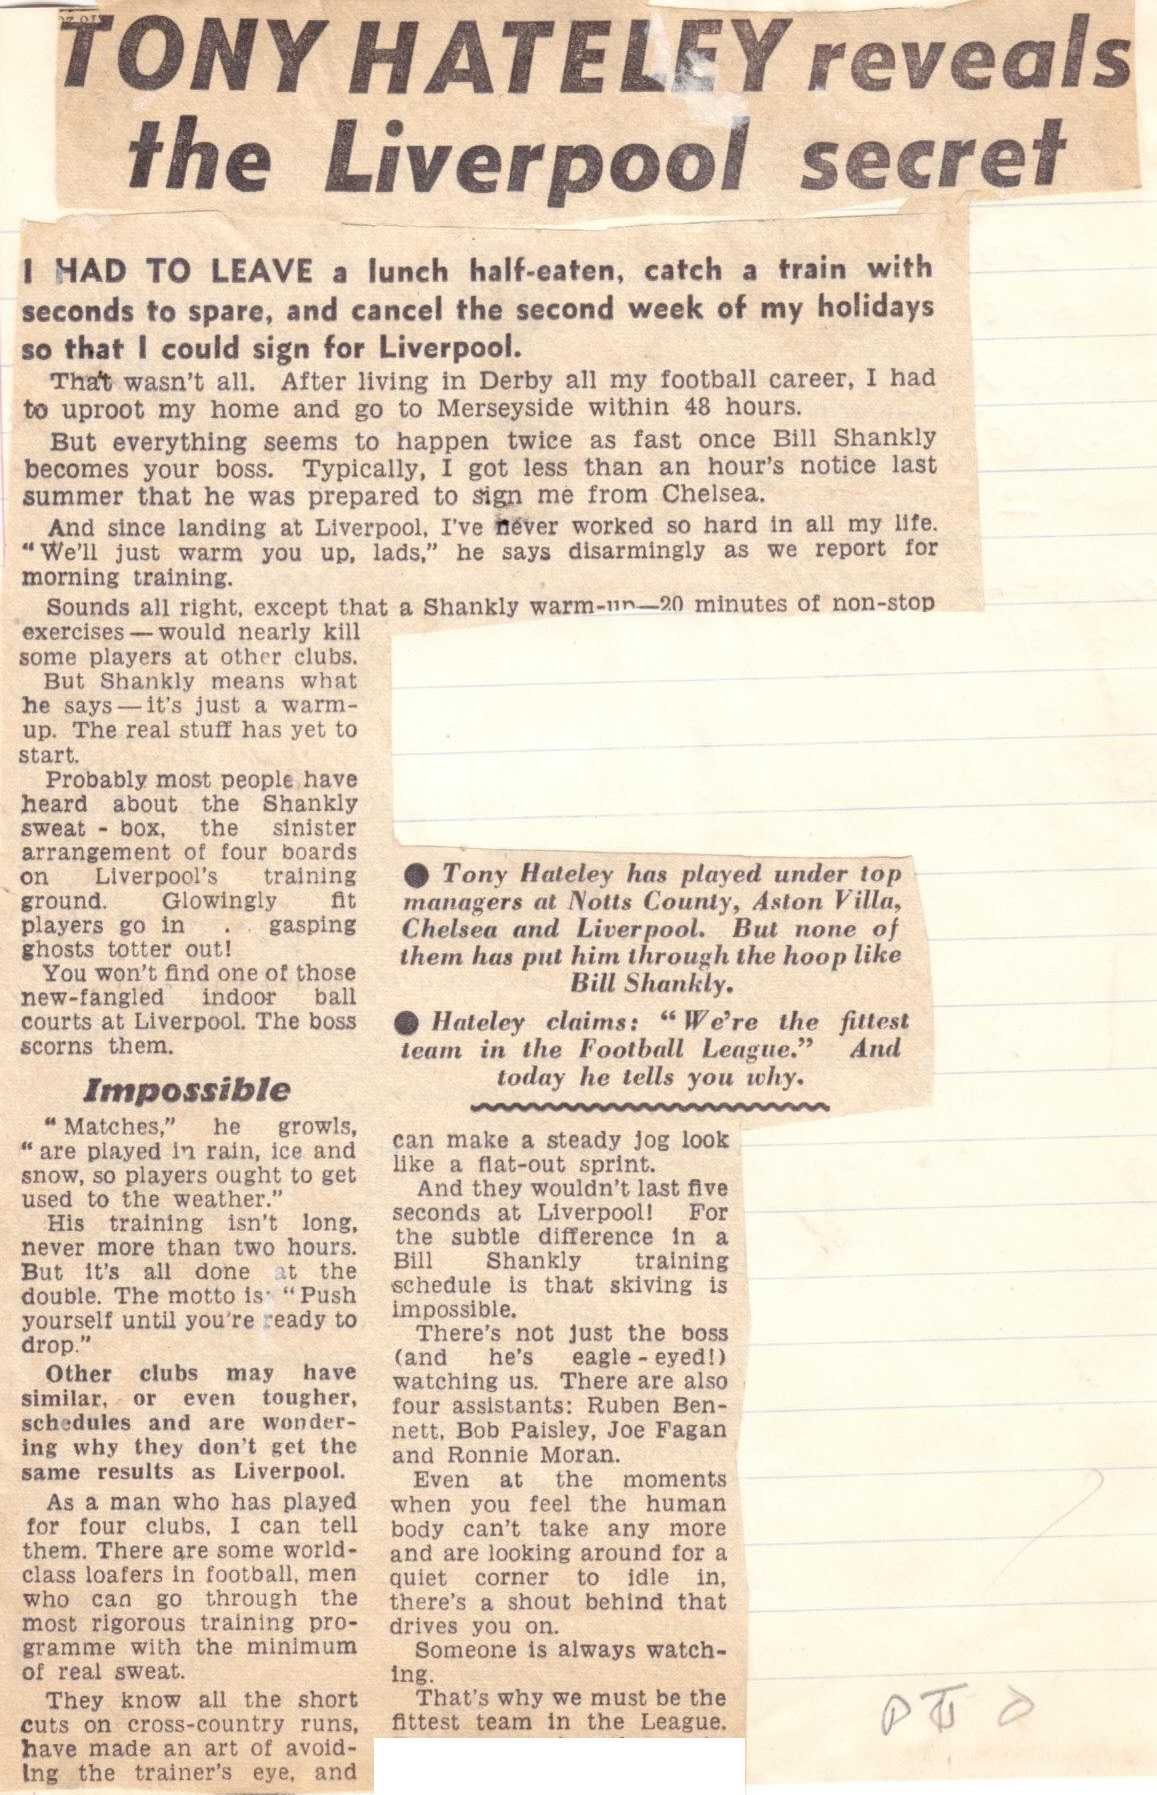 Hateley reveals the Liverpool secret